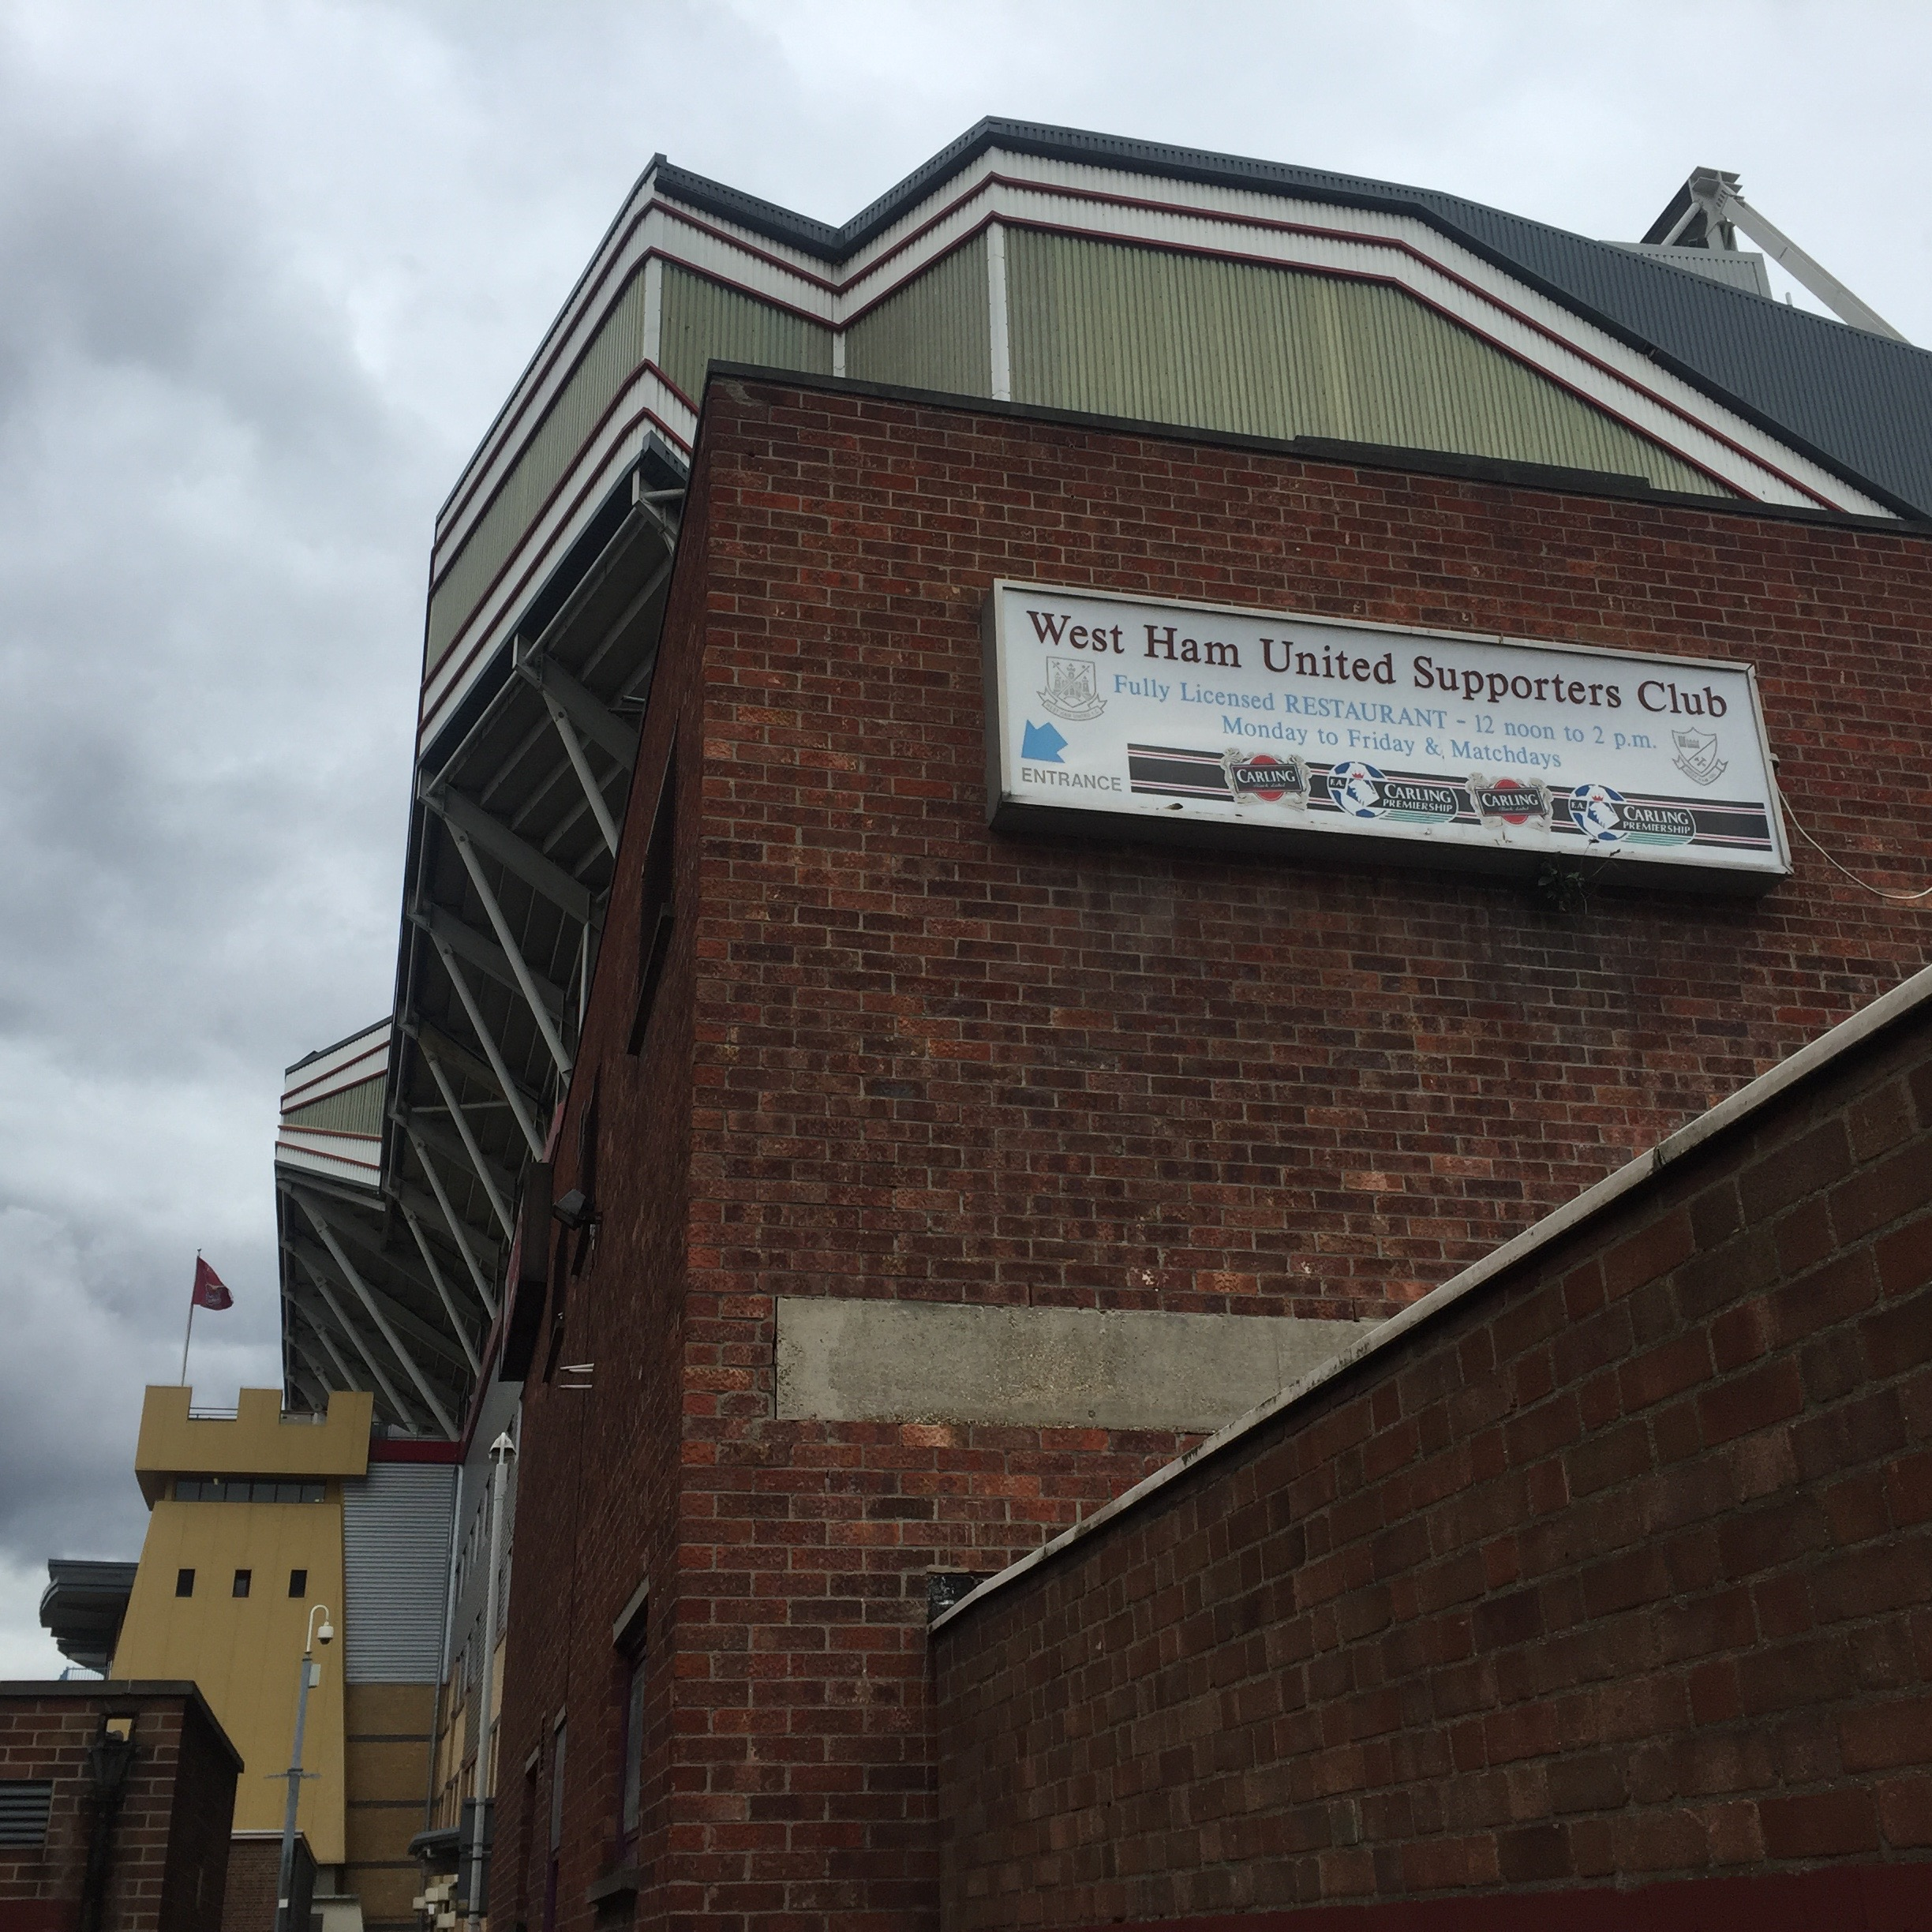 West Ham Supporters Club, Upton Park